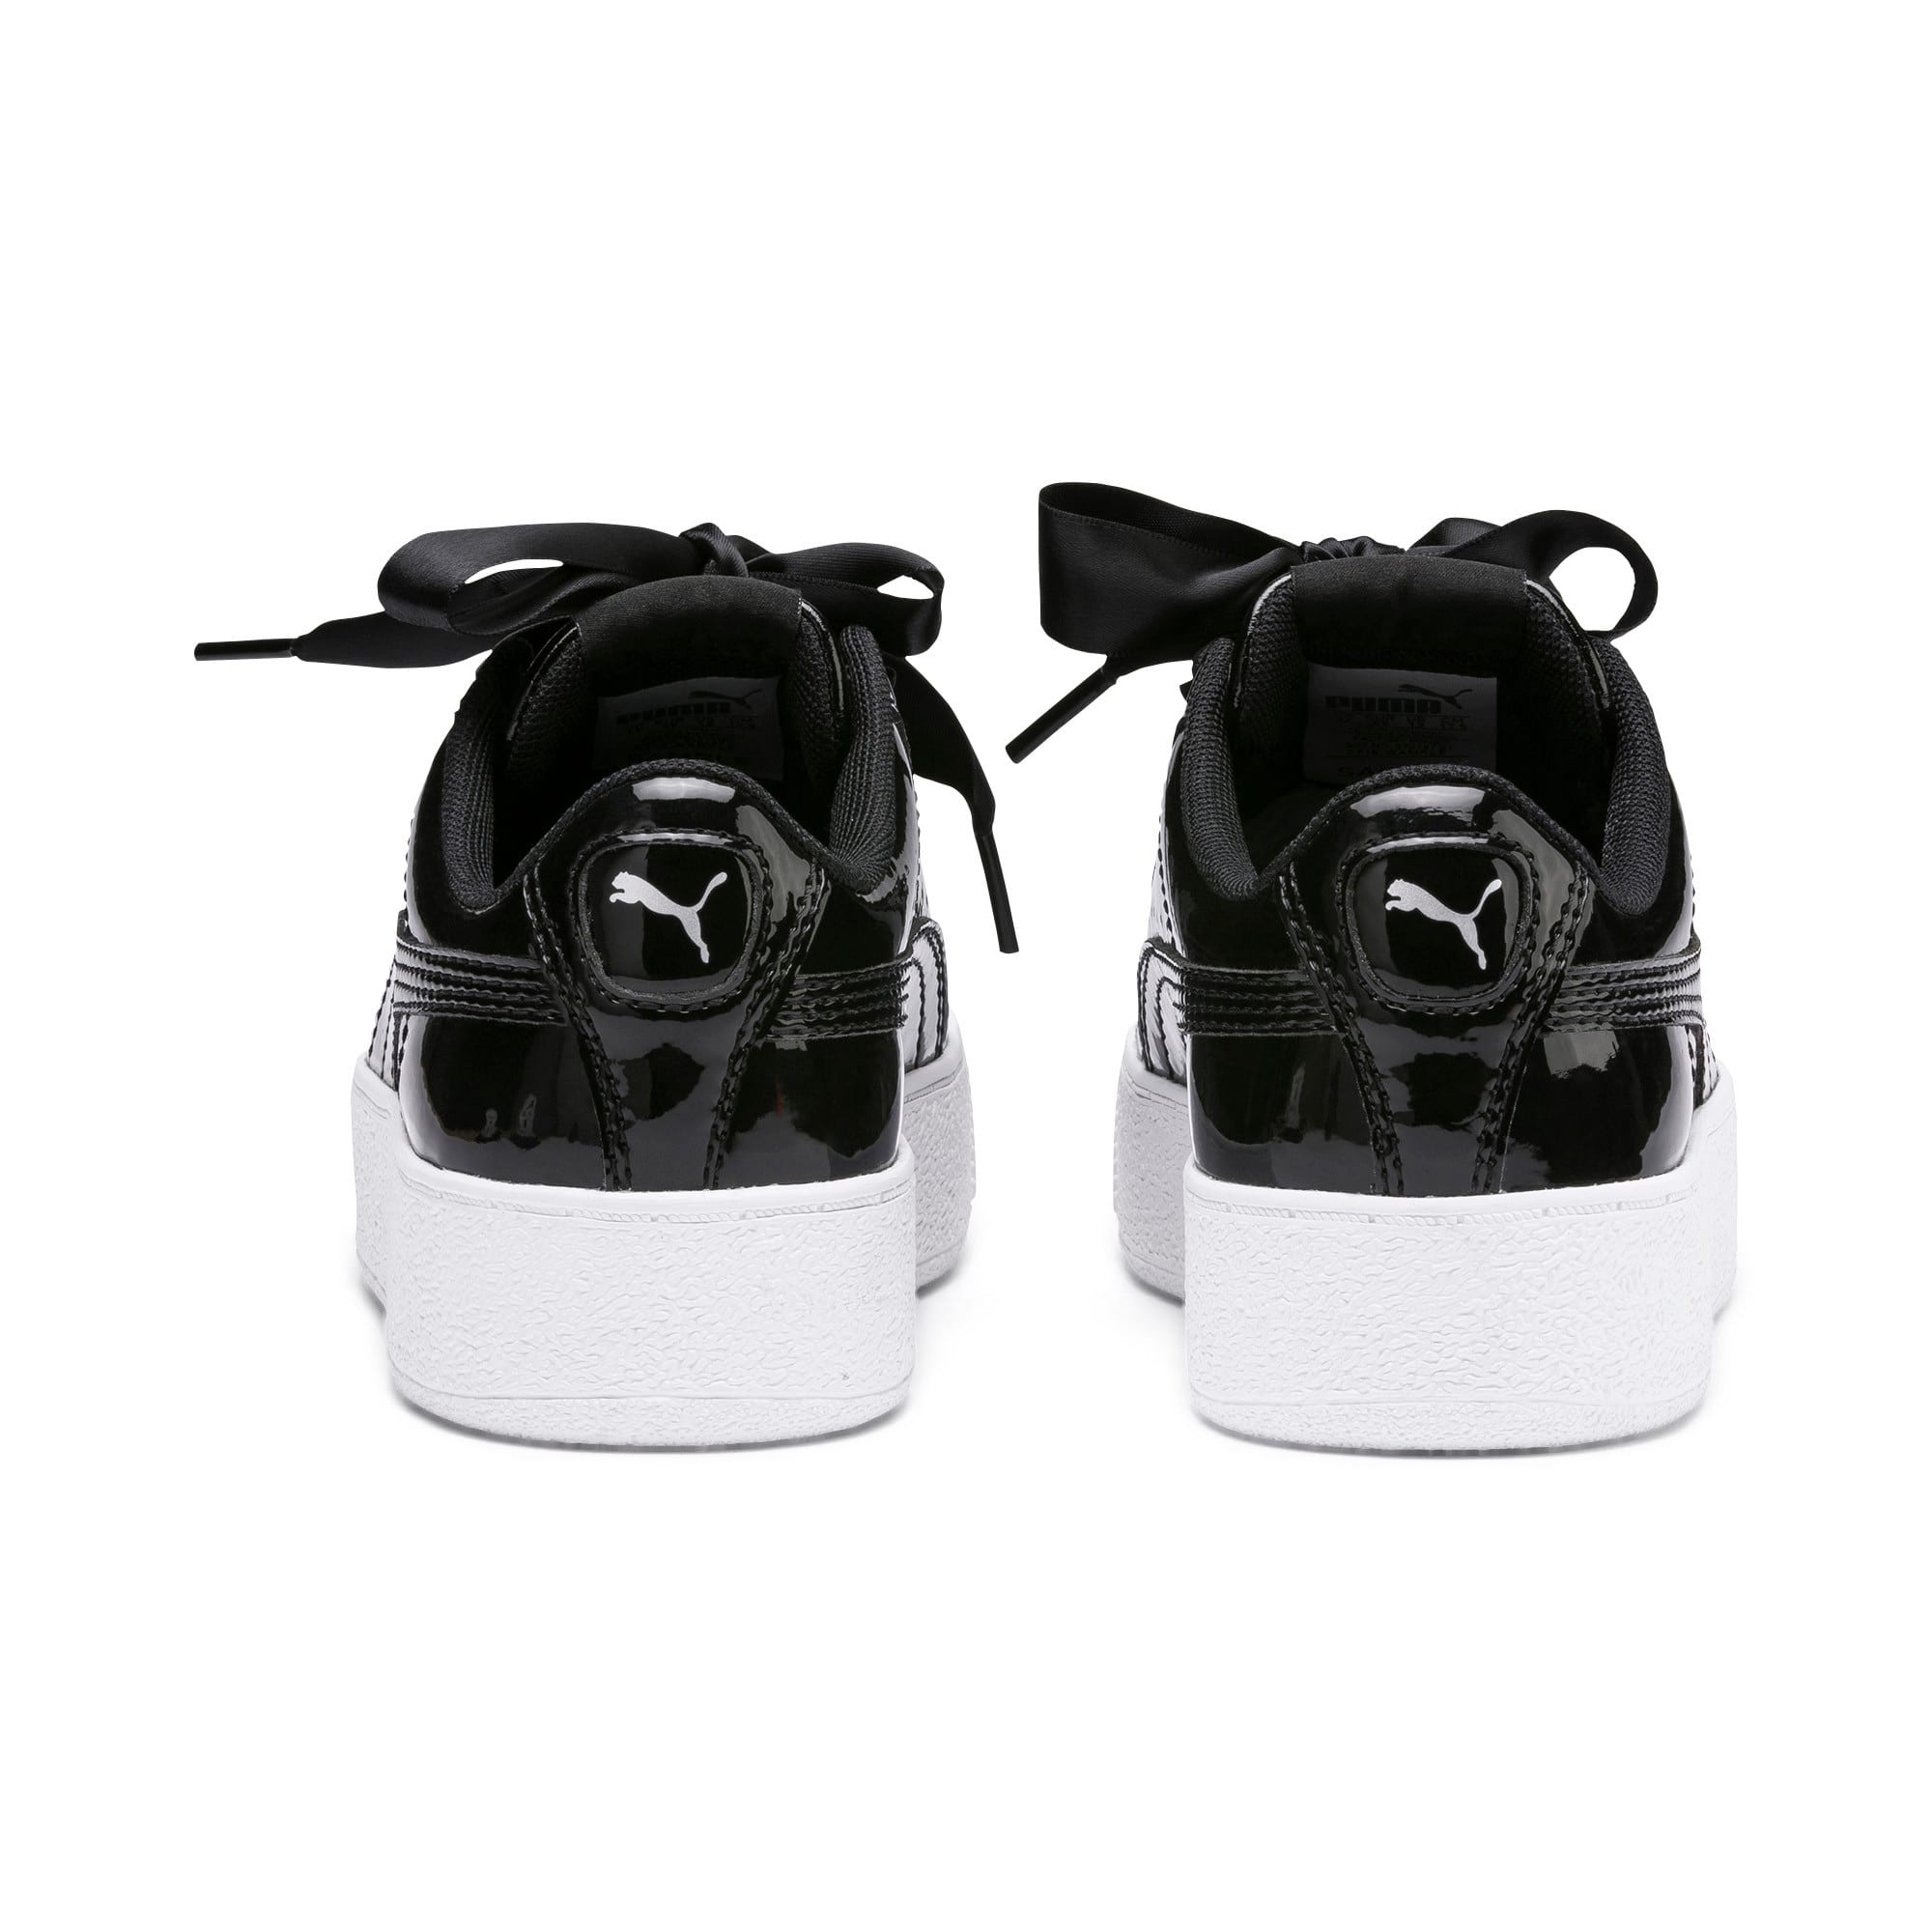 Thumbnail 3 of Vikky Platform Ribbon Patent Kids' Trainers, Puma Black-Puma Black, medium